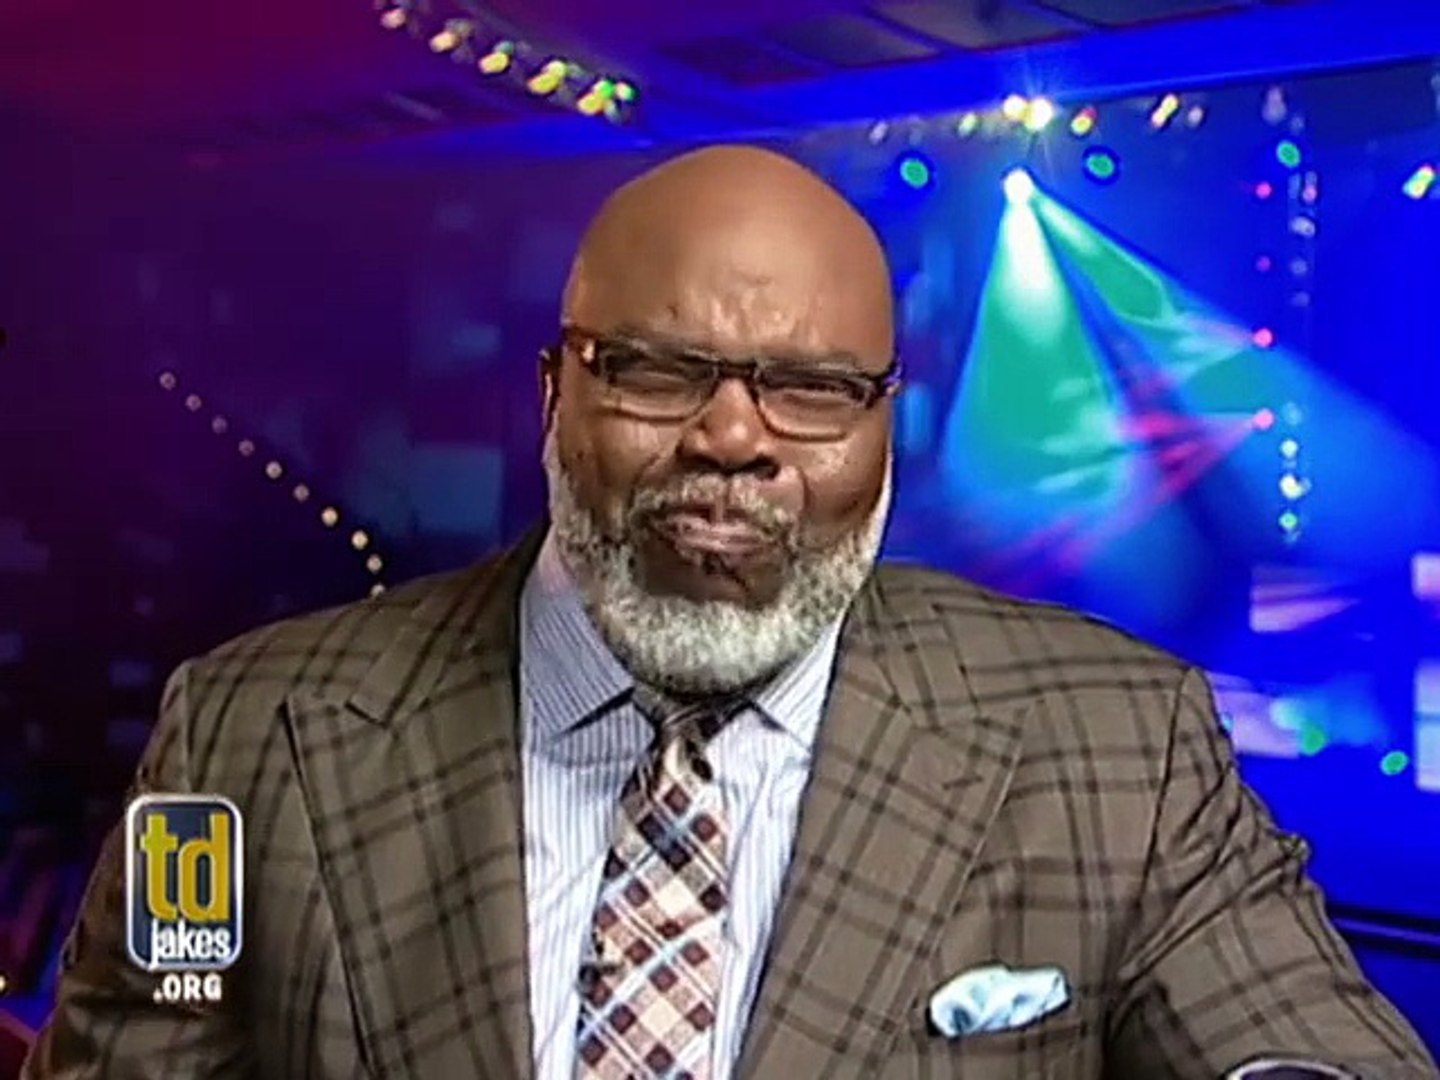 TD Jakes Sermons 2016 - Just Do It